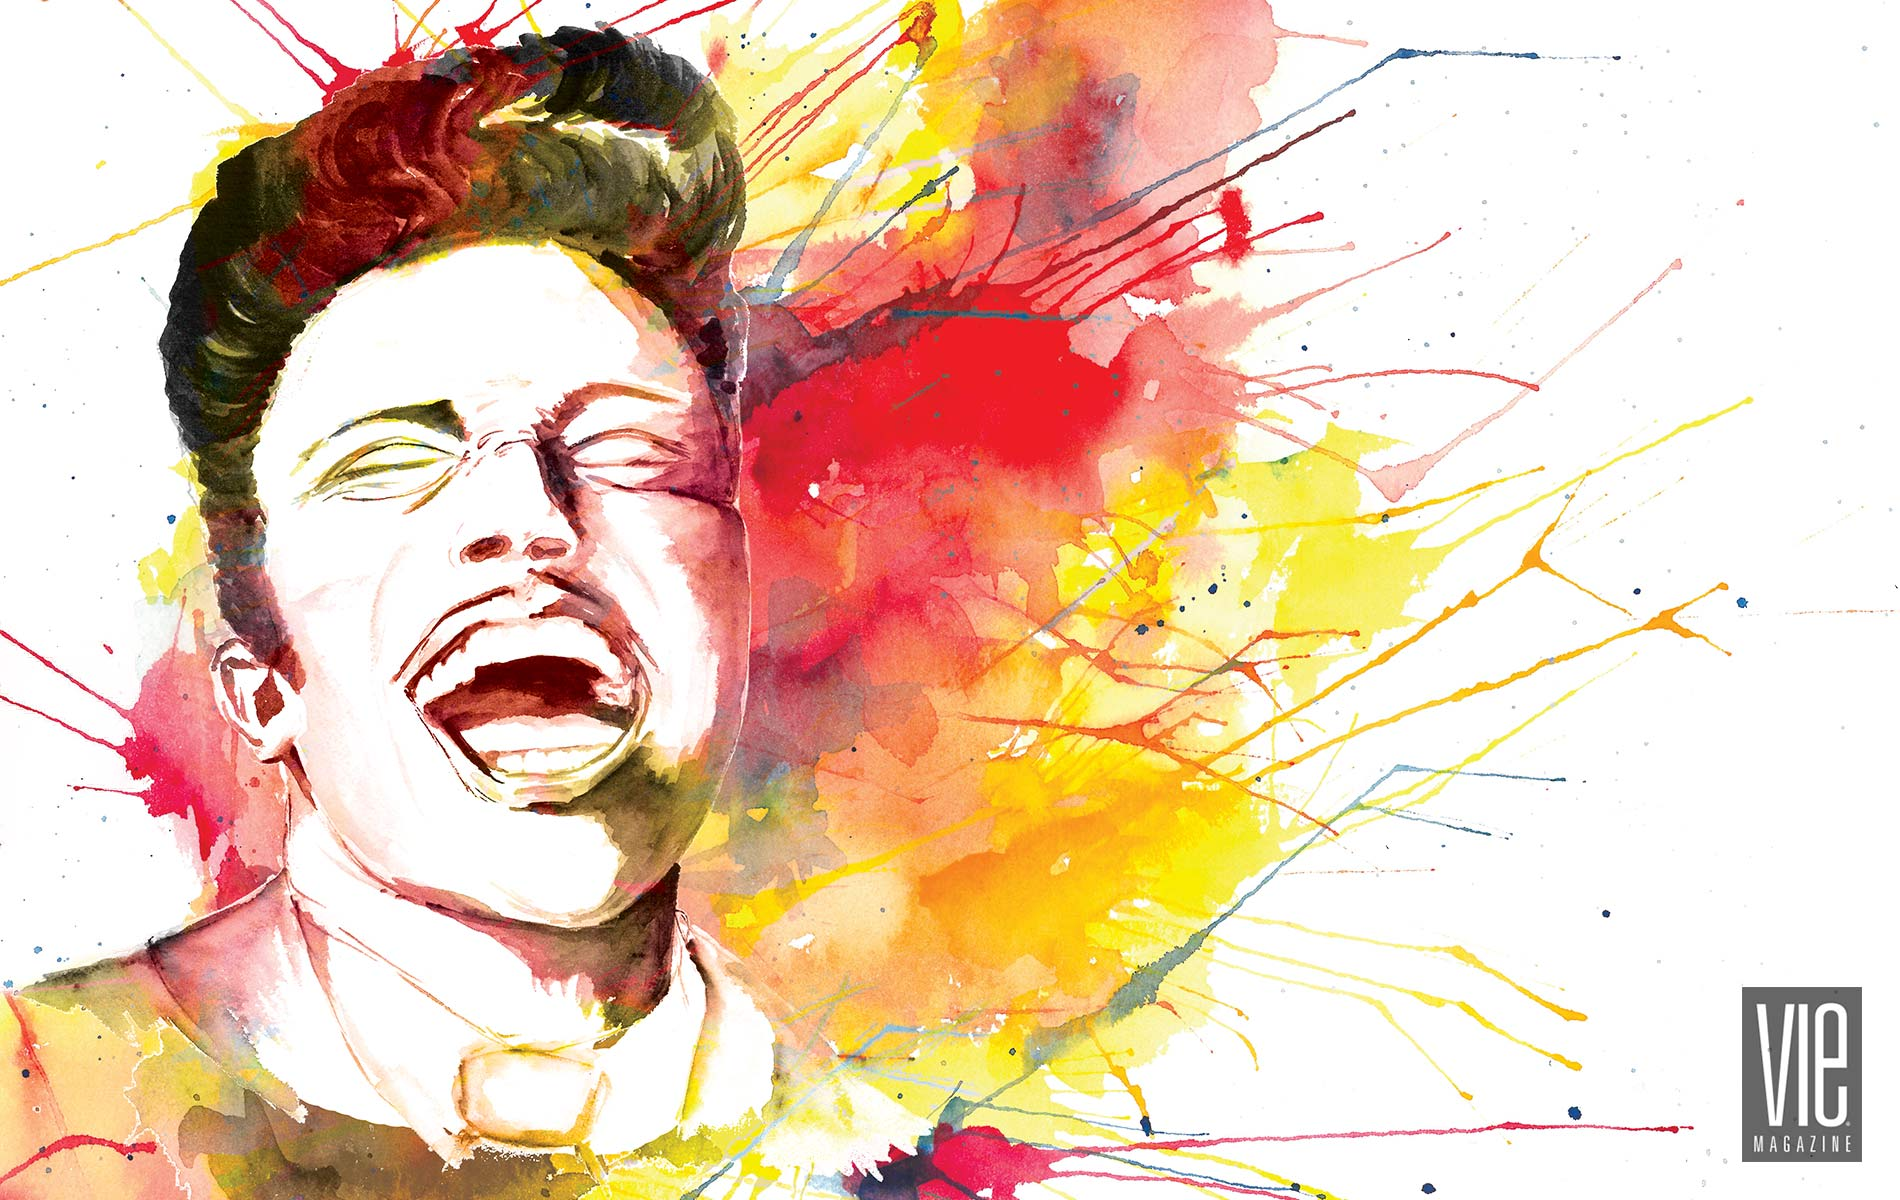 little richard art of the scream art piece lucy mashburn